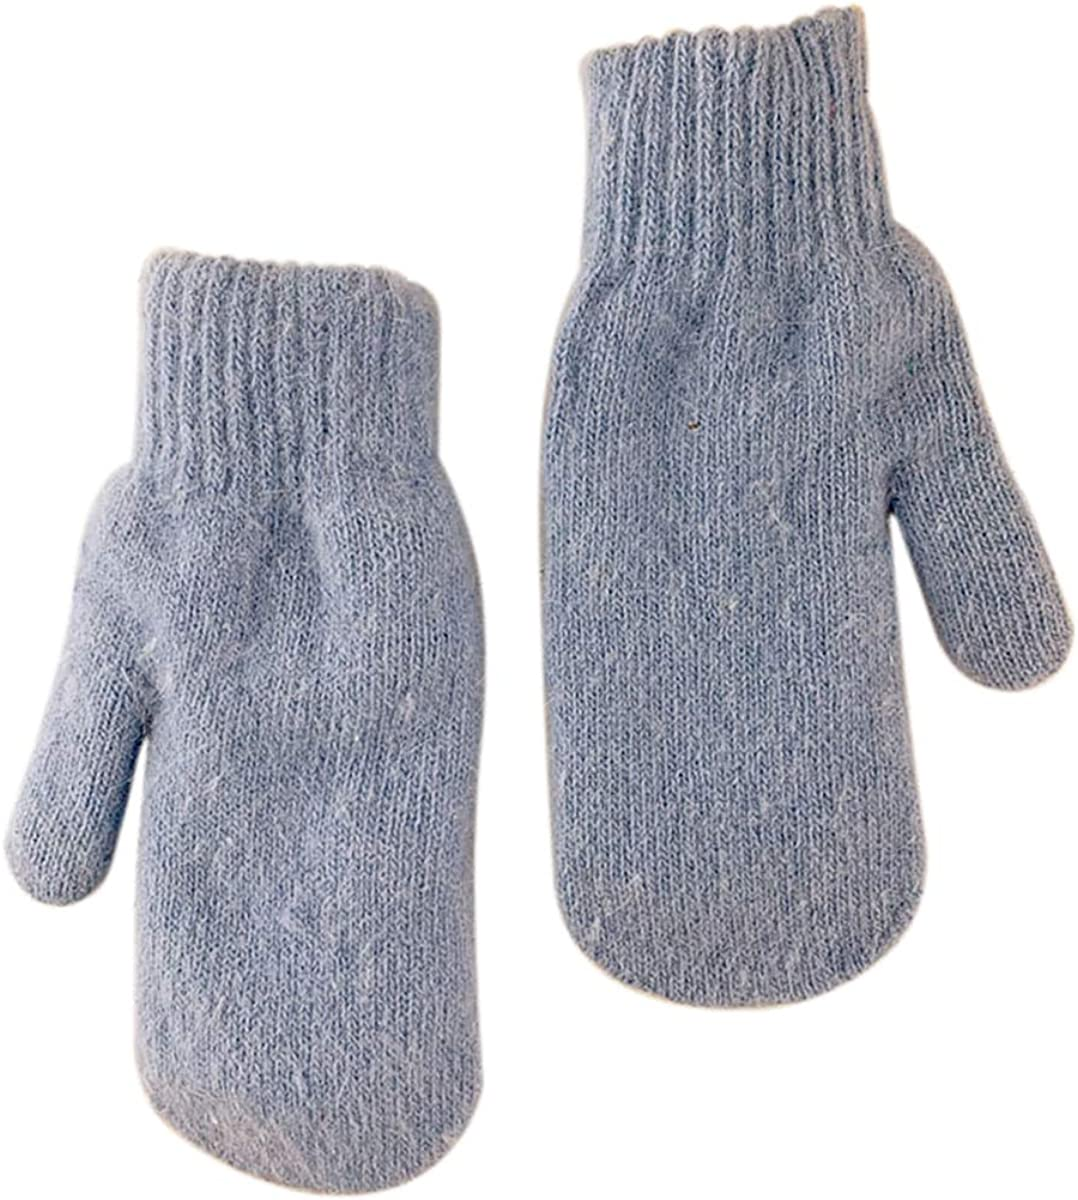 jweemax Winter Knitted Gloves, Double-layer rabbit hair gloves Stretch Mittens Warm Lined Soft Knit Gloves